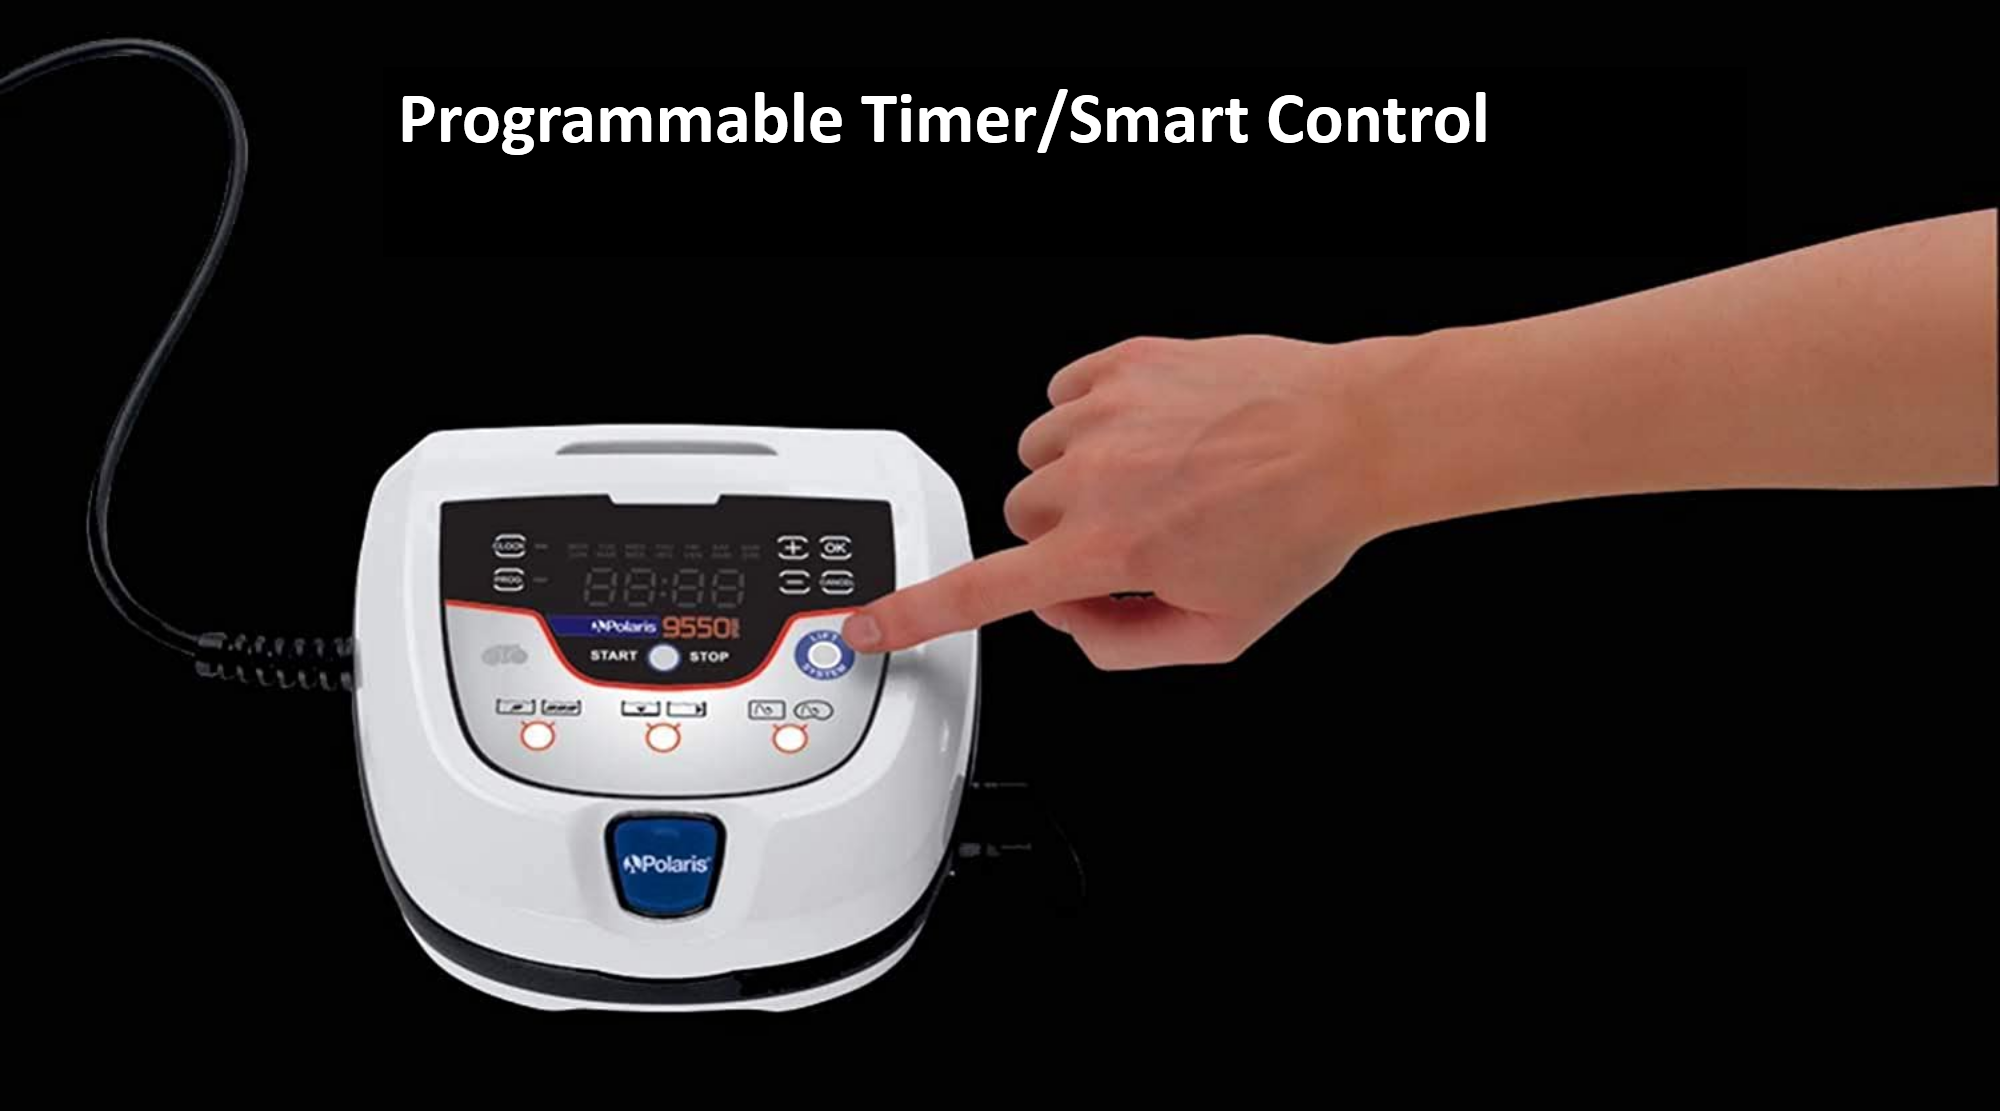 Polaris Robotic Pool Cleaner Programmable Timer